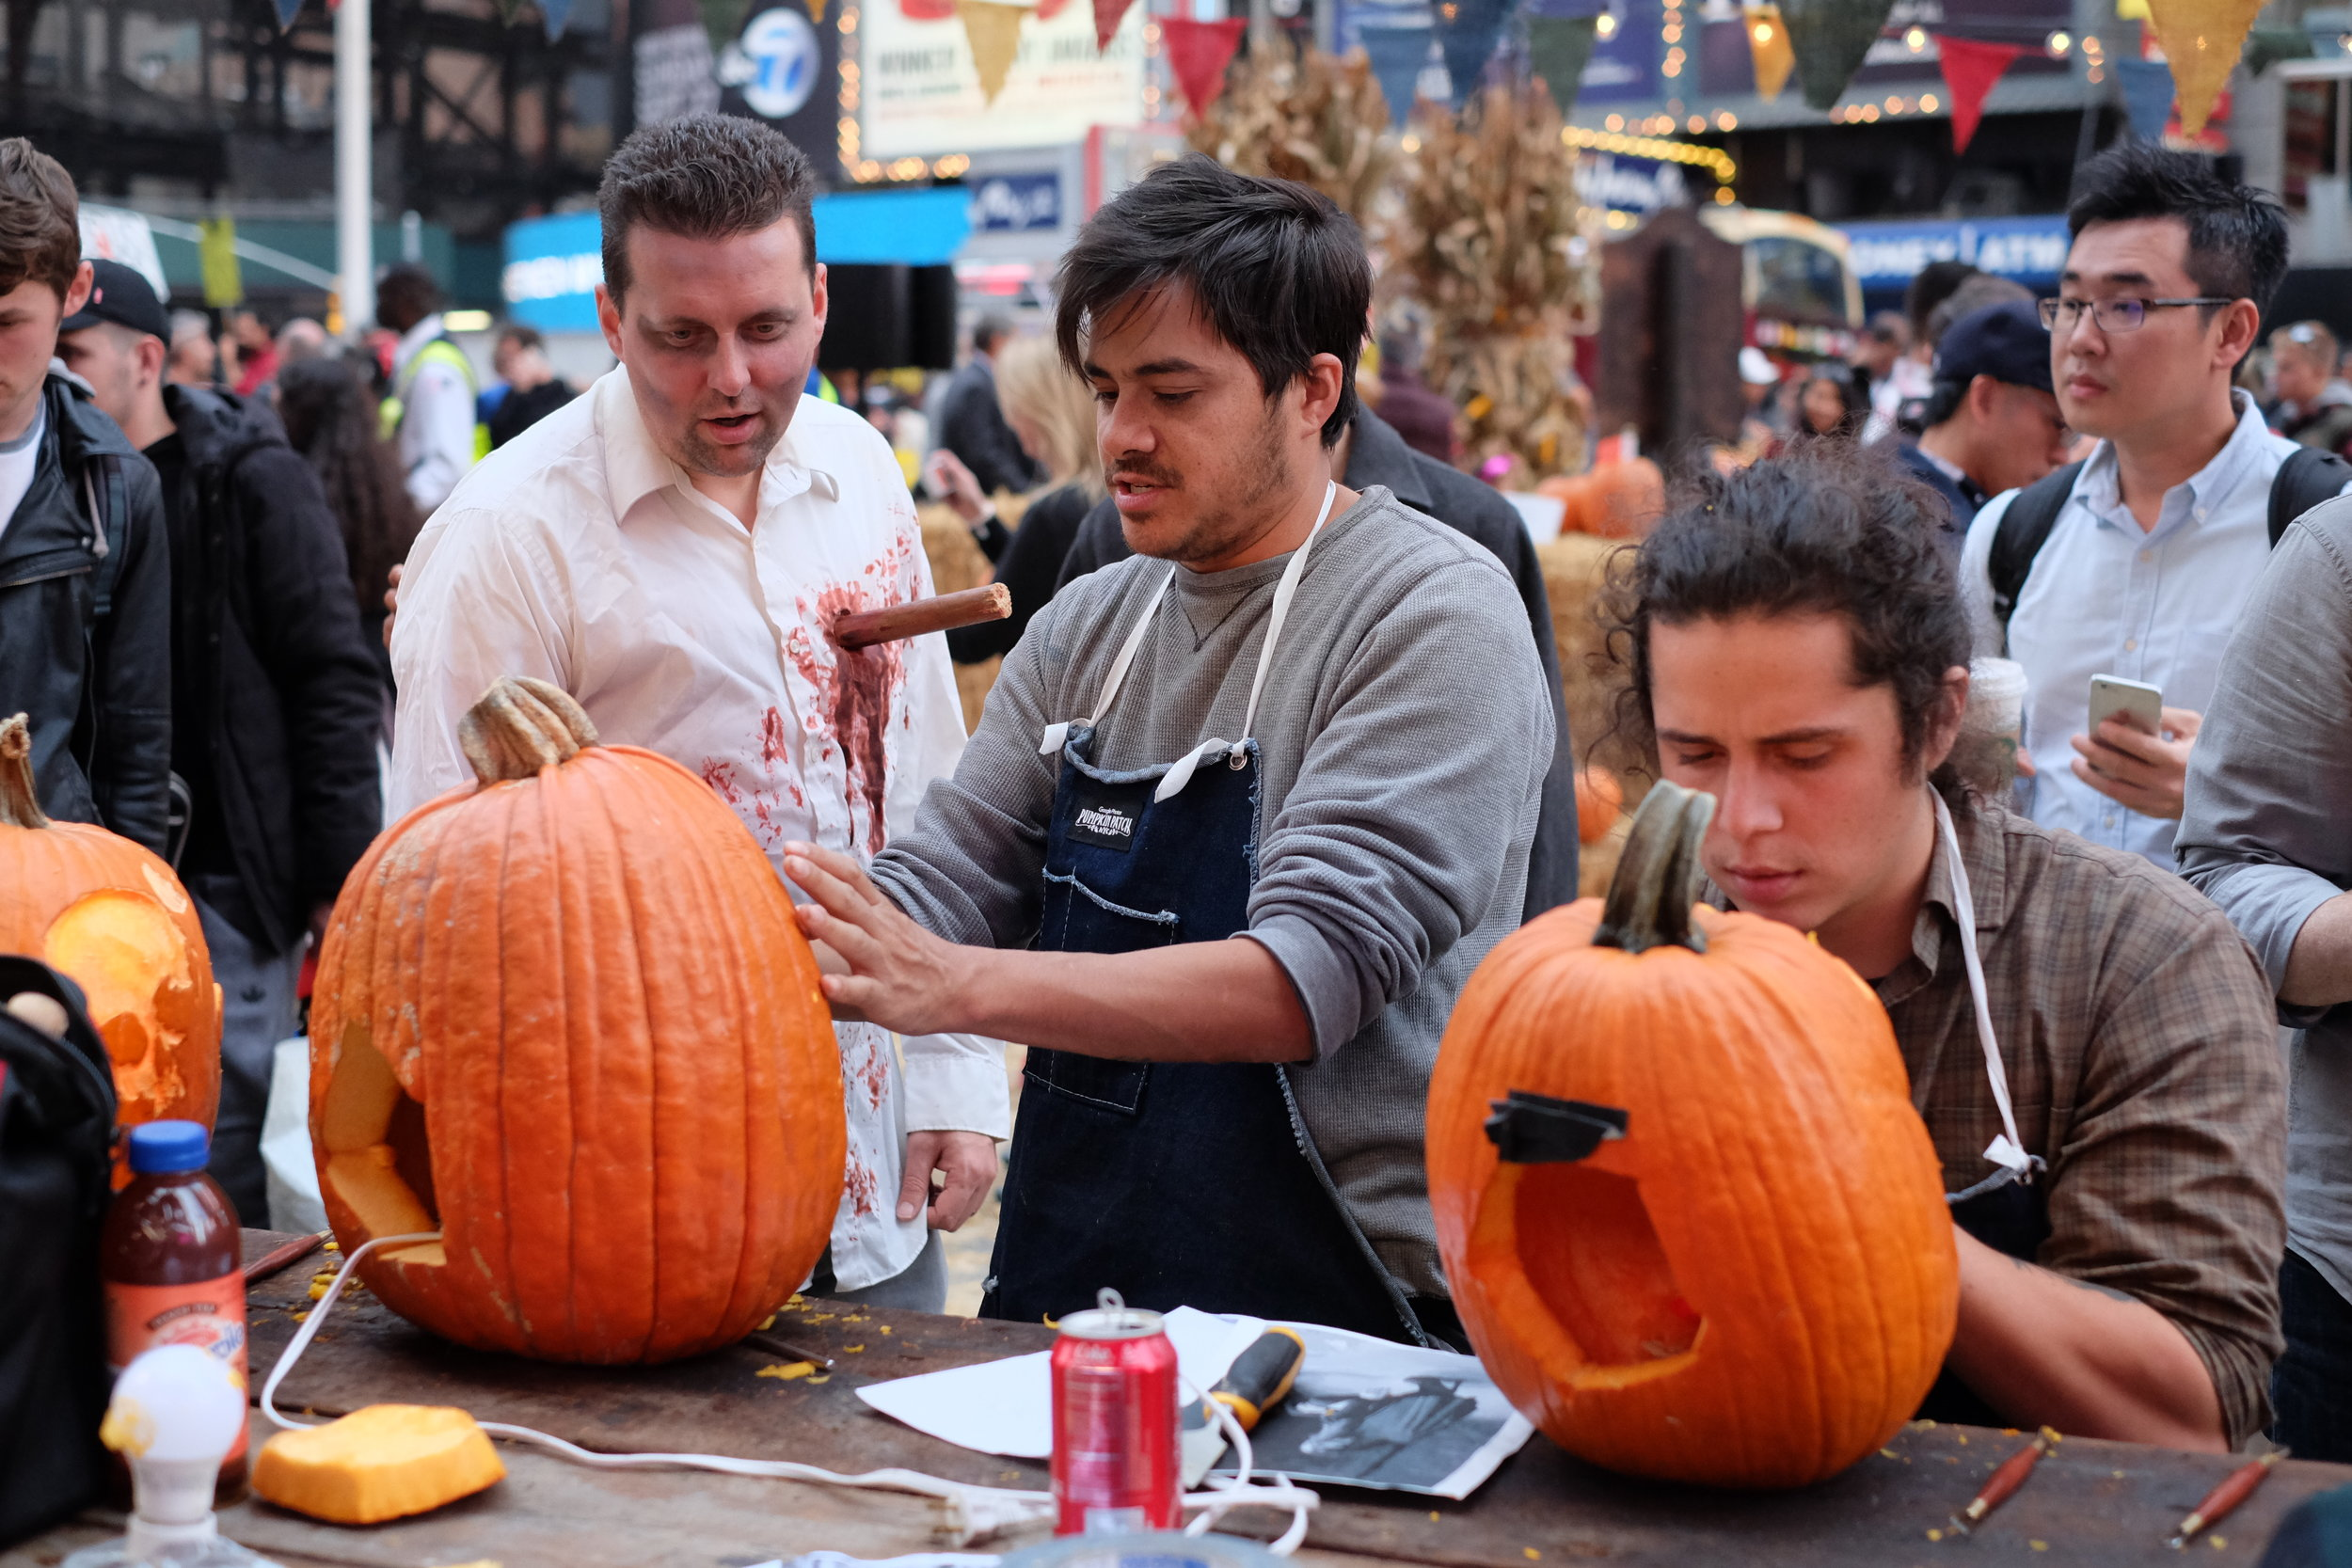 Chris and Jose carving pumpkins during a massive Times Square activation for Google Photos.